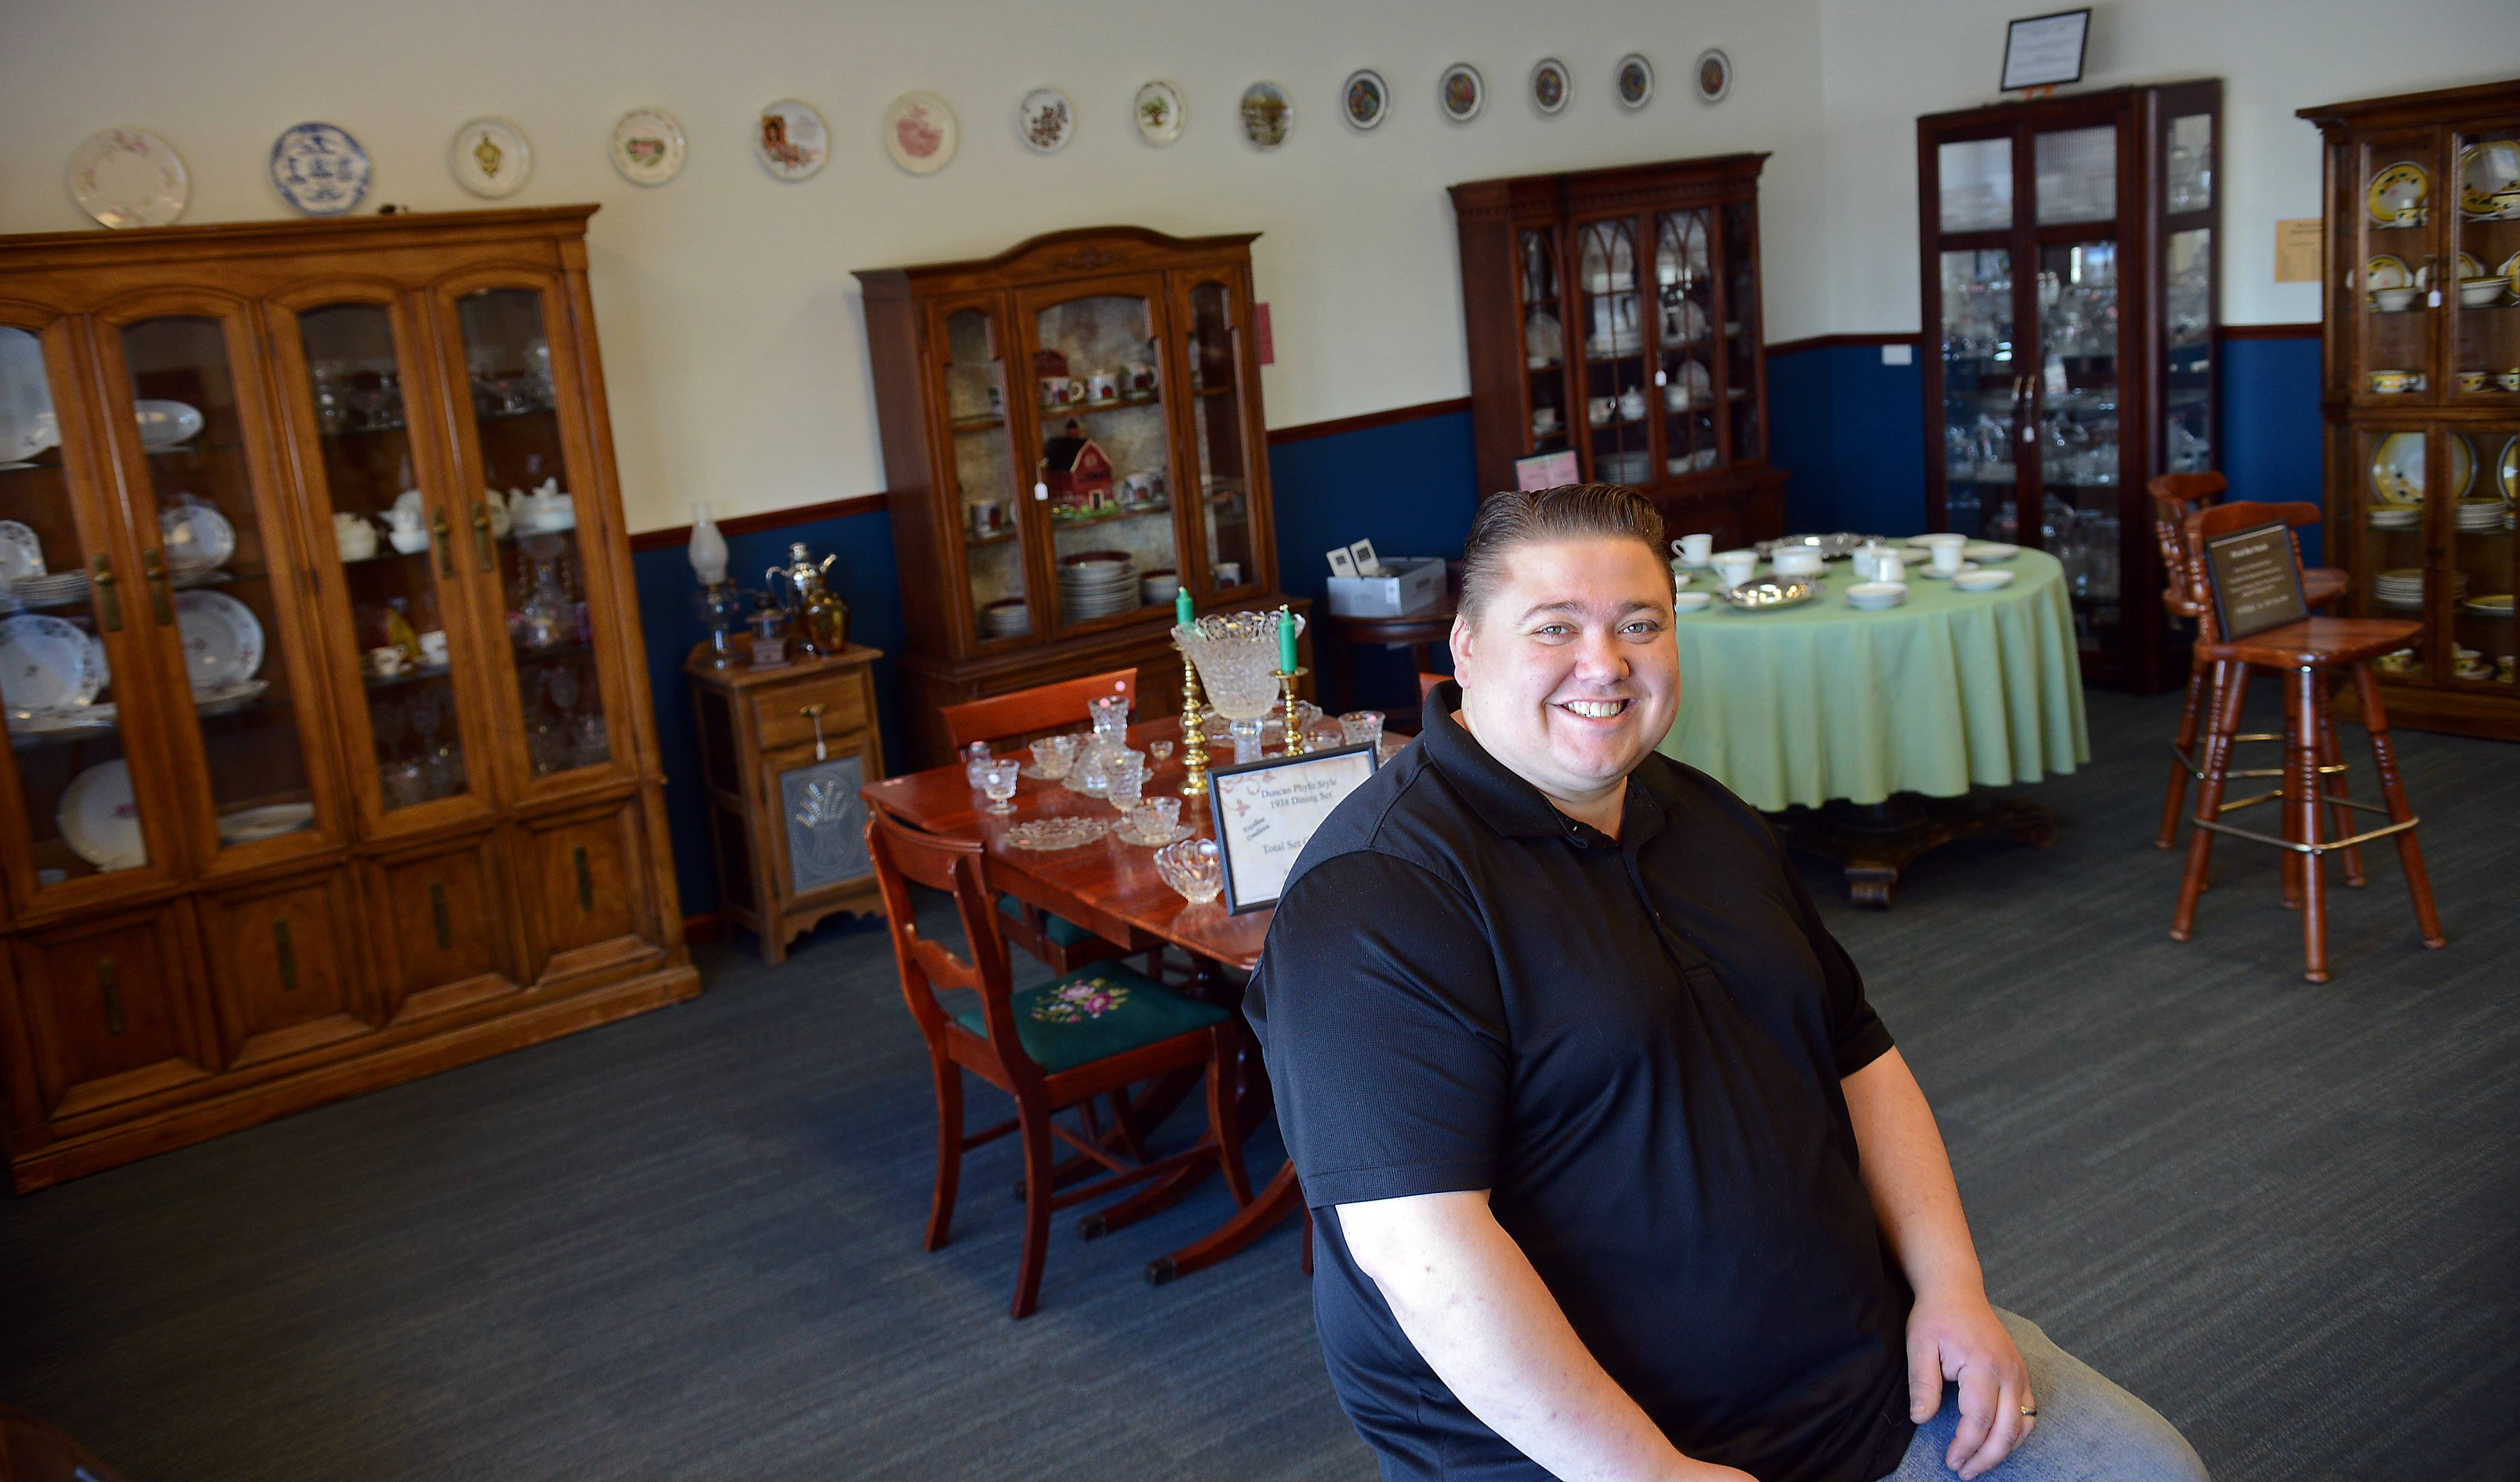 Nick Utech recently opened Second Chances Antiques and Resale on Randall Road in Lake in the Hills.